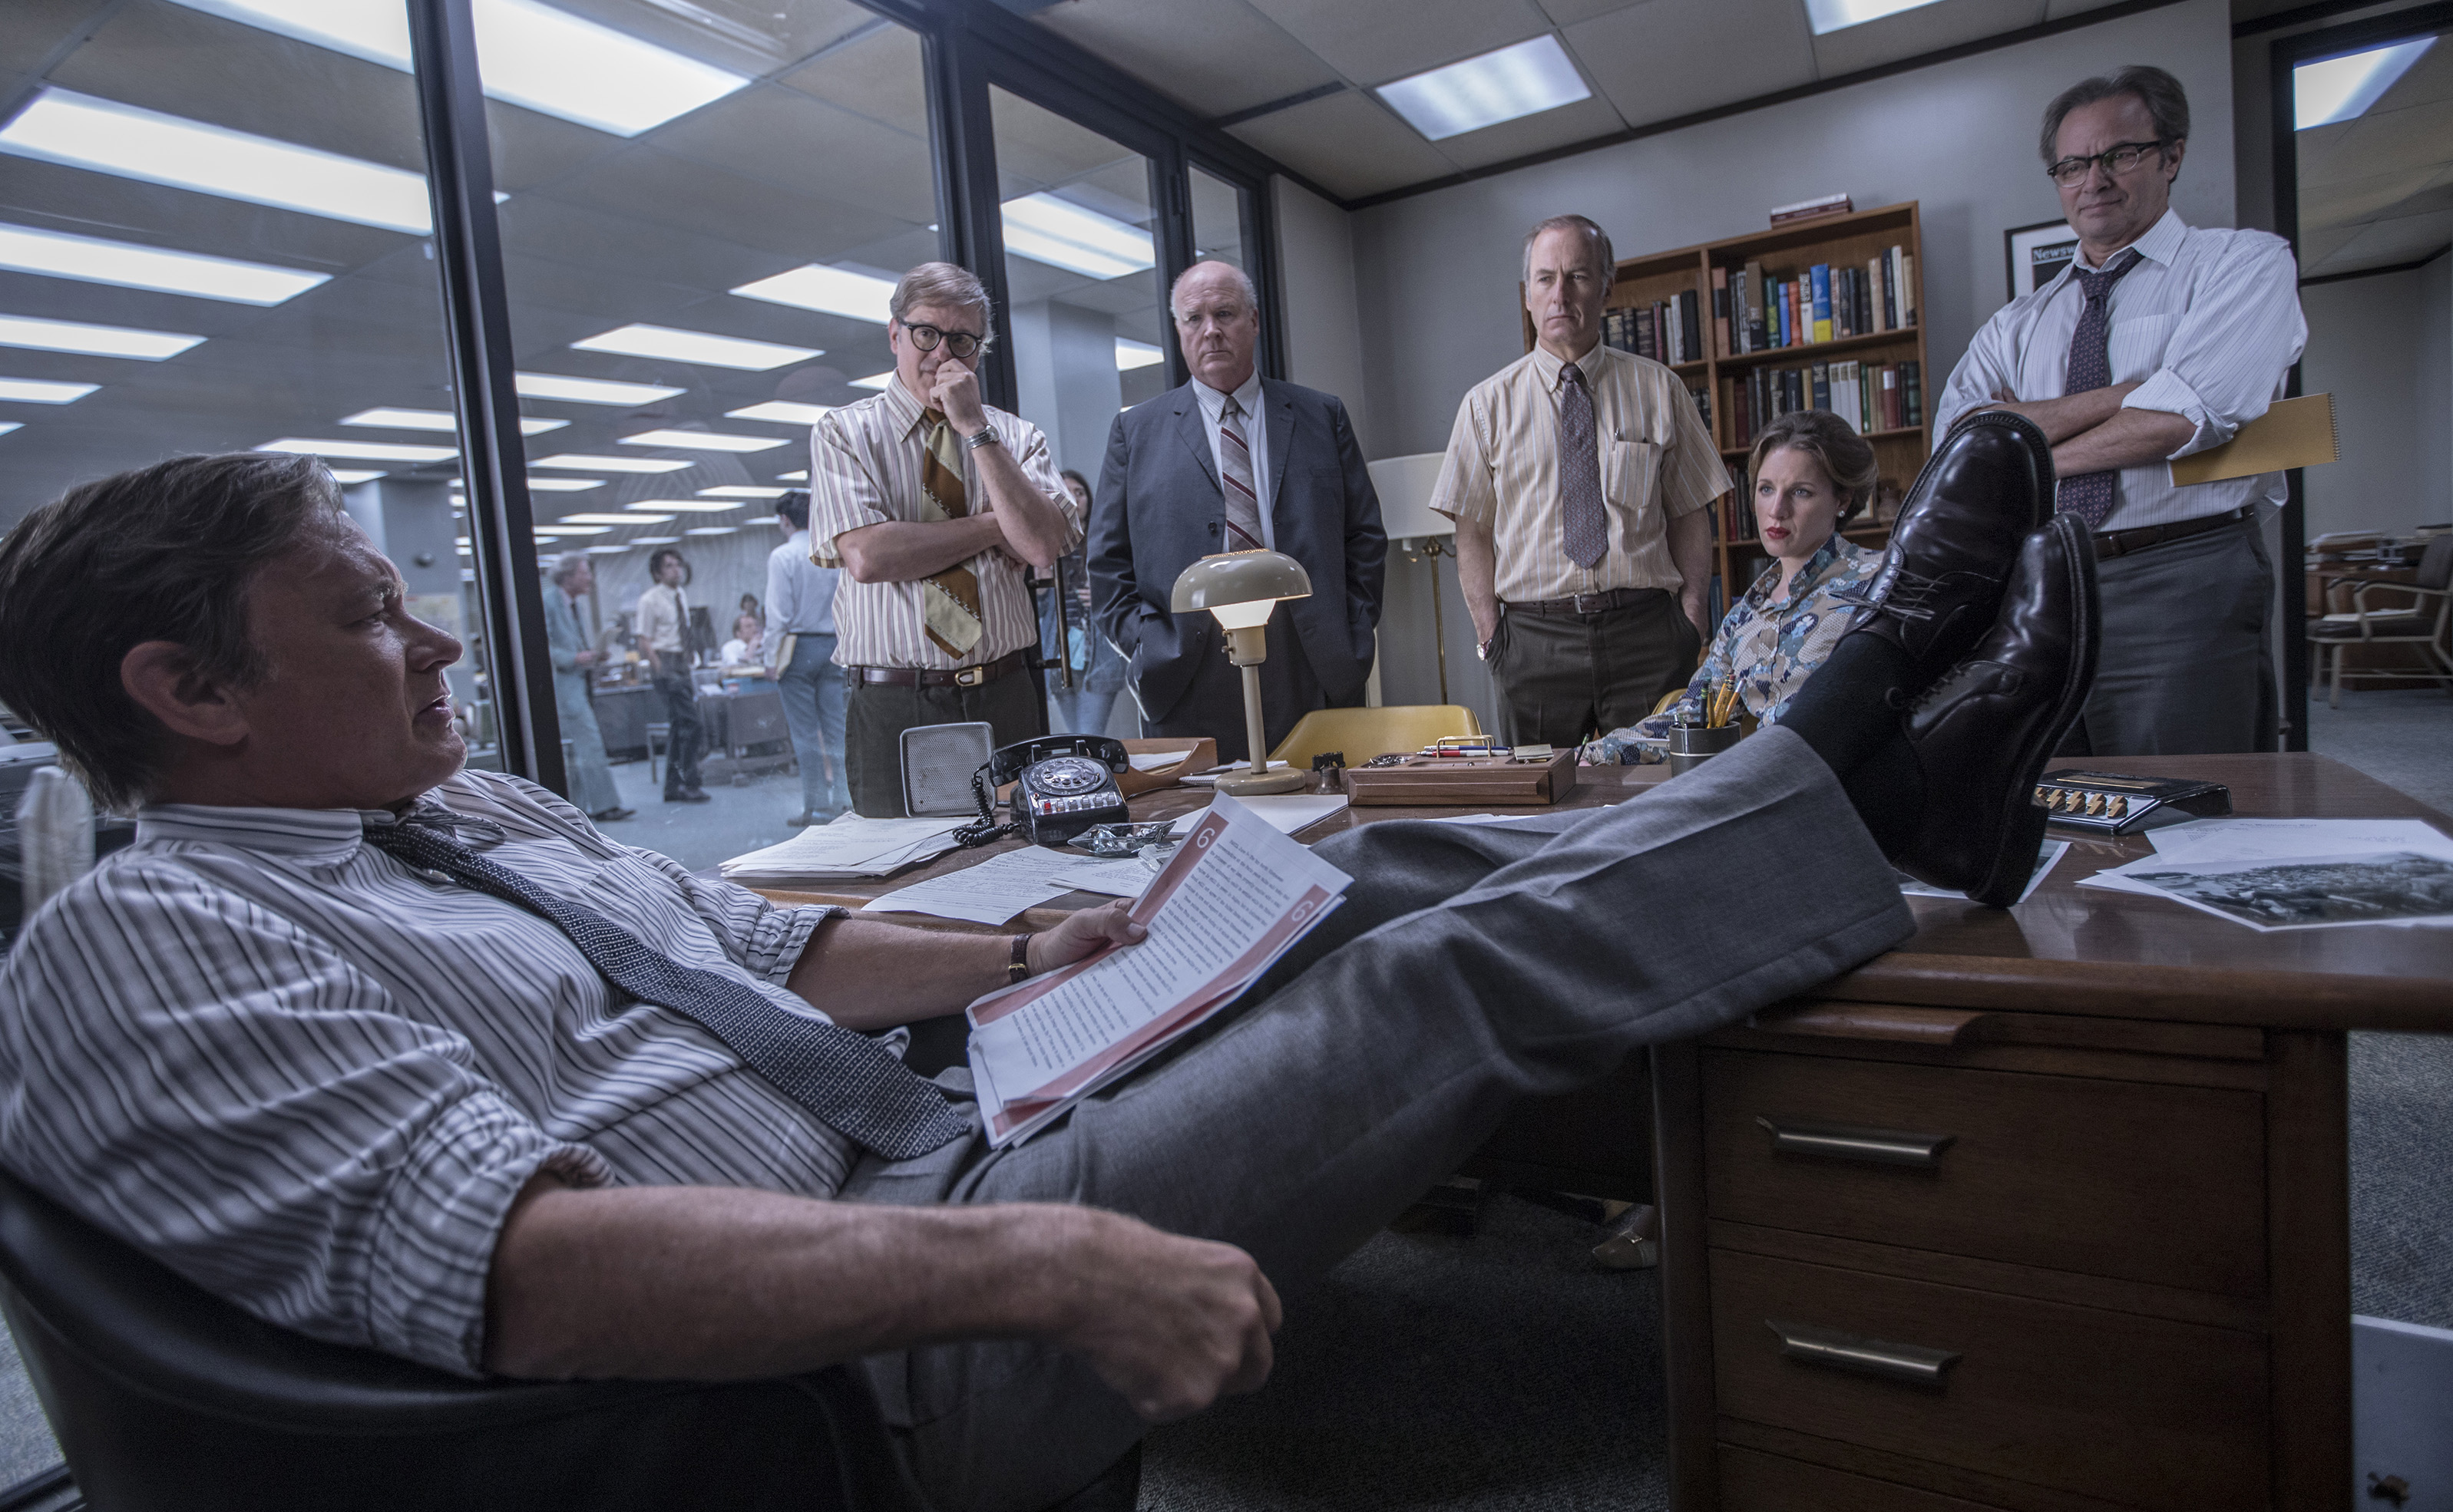 Steven Spielberg's Latest Film Has Journalists Fighting the Government